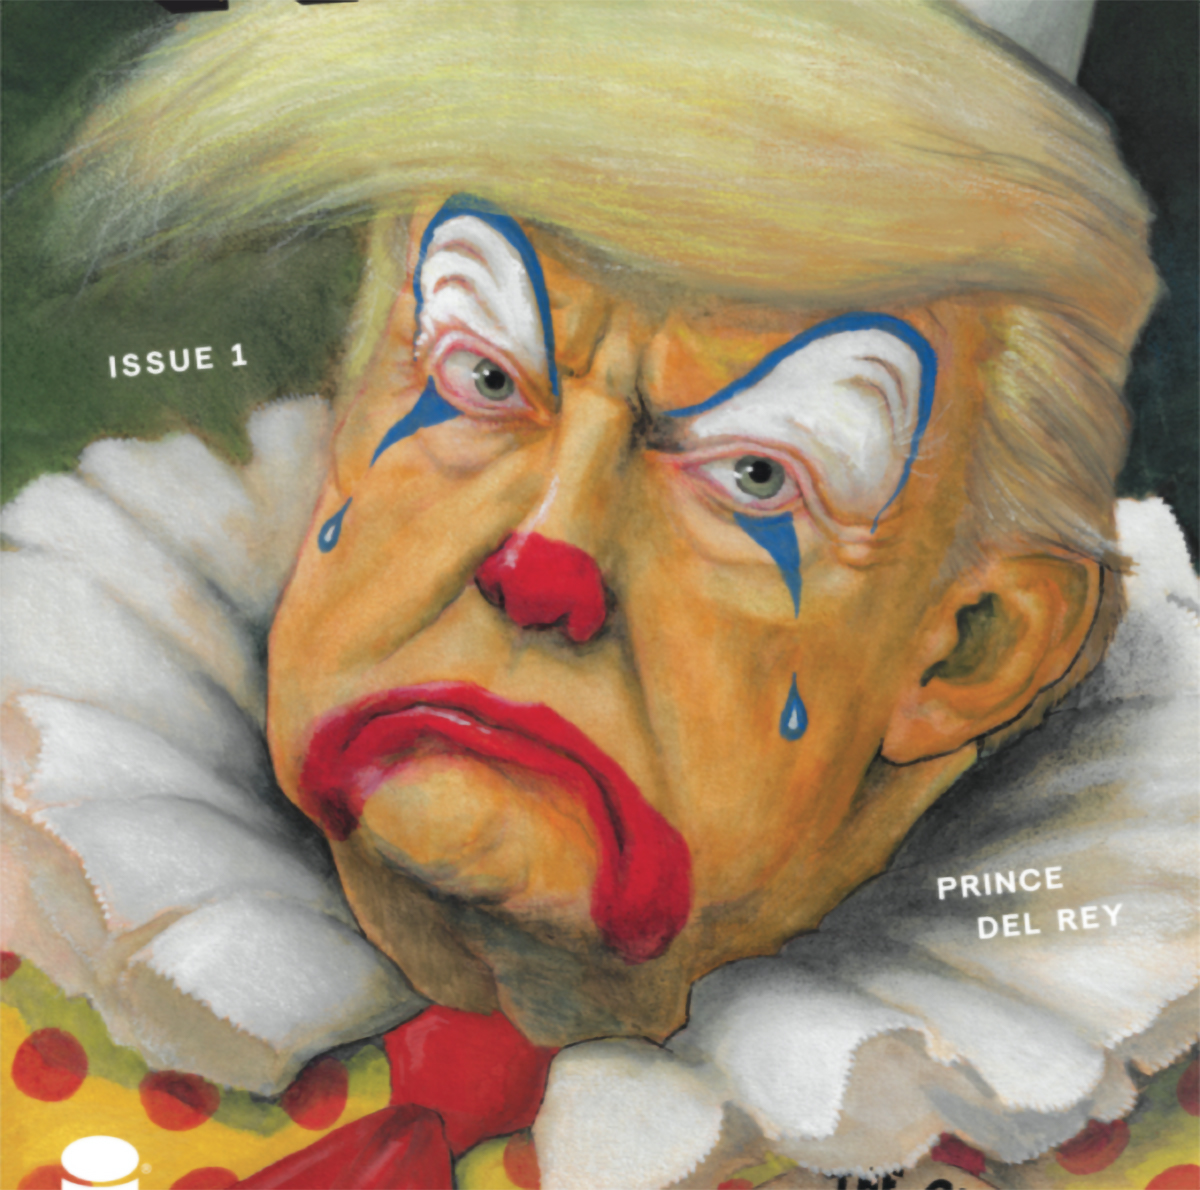 'Haha' #1 variant cover depicts President Trump as a crying clown